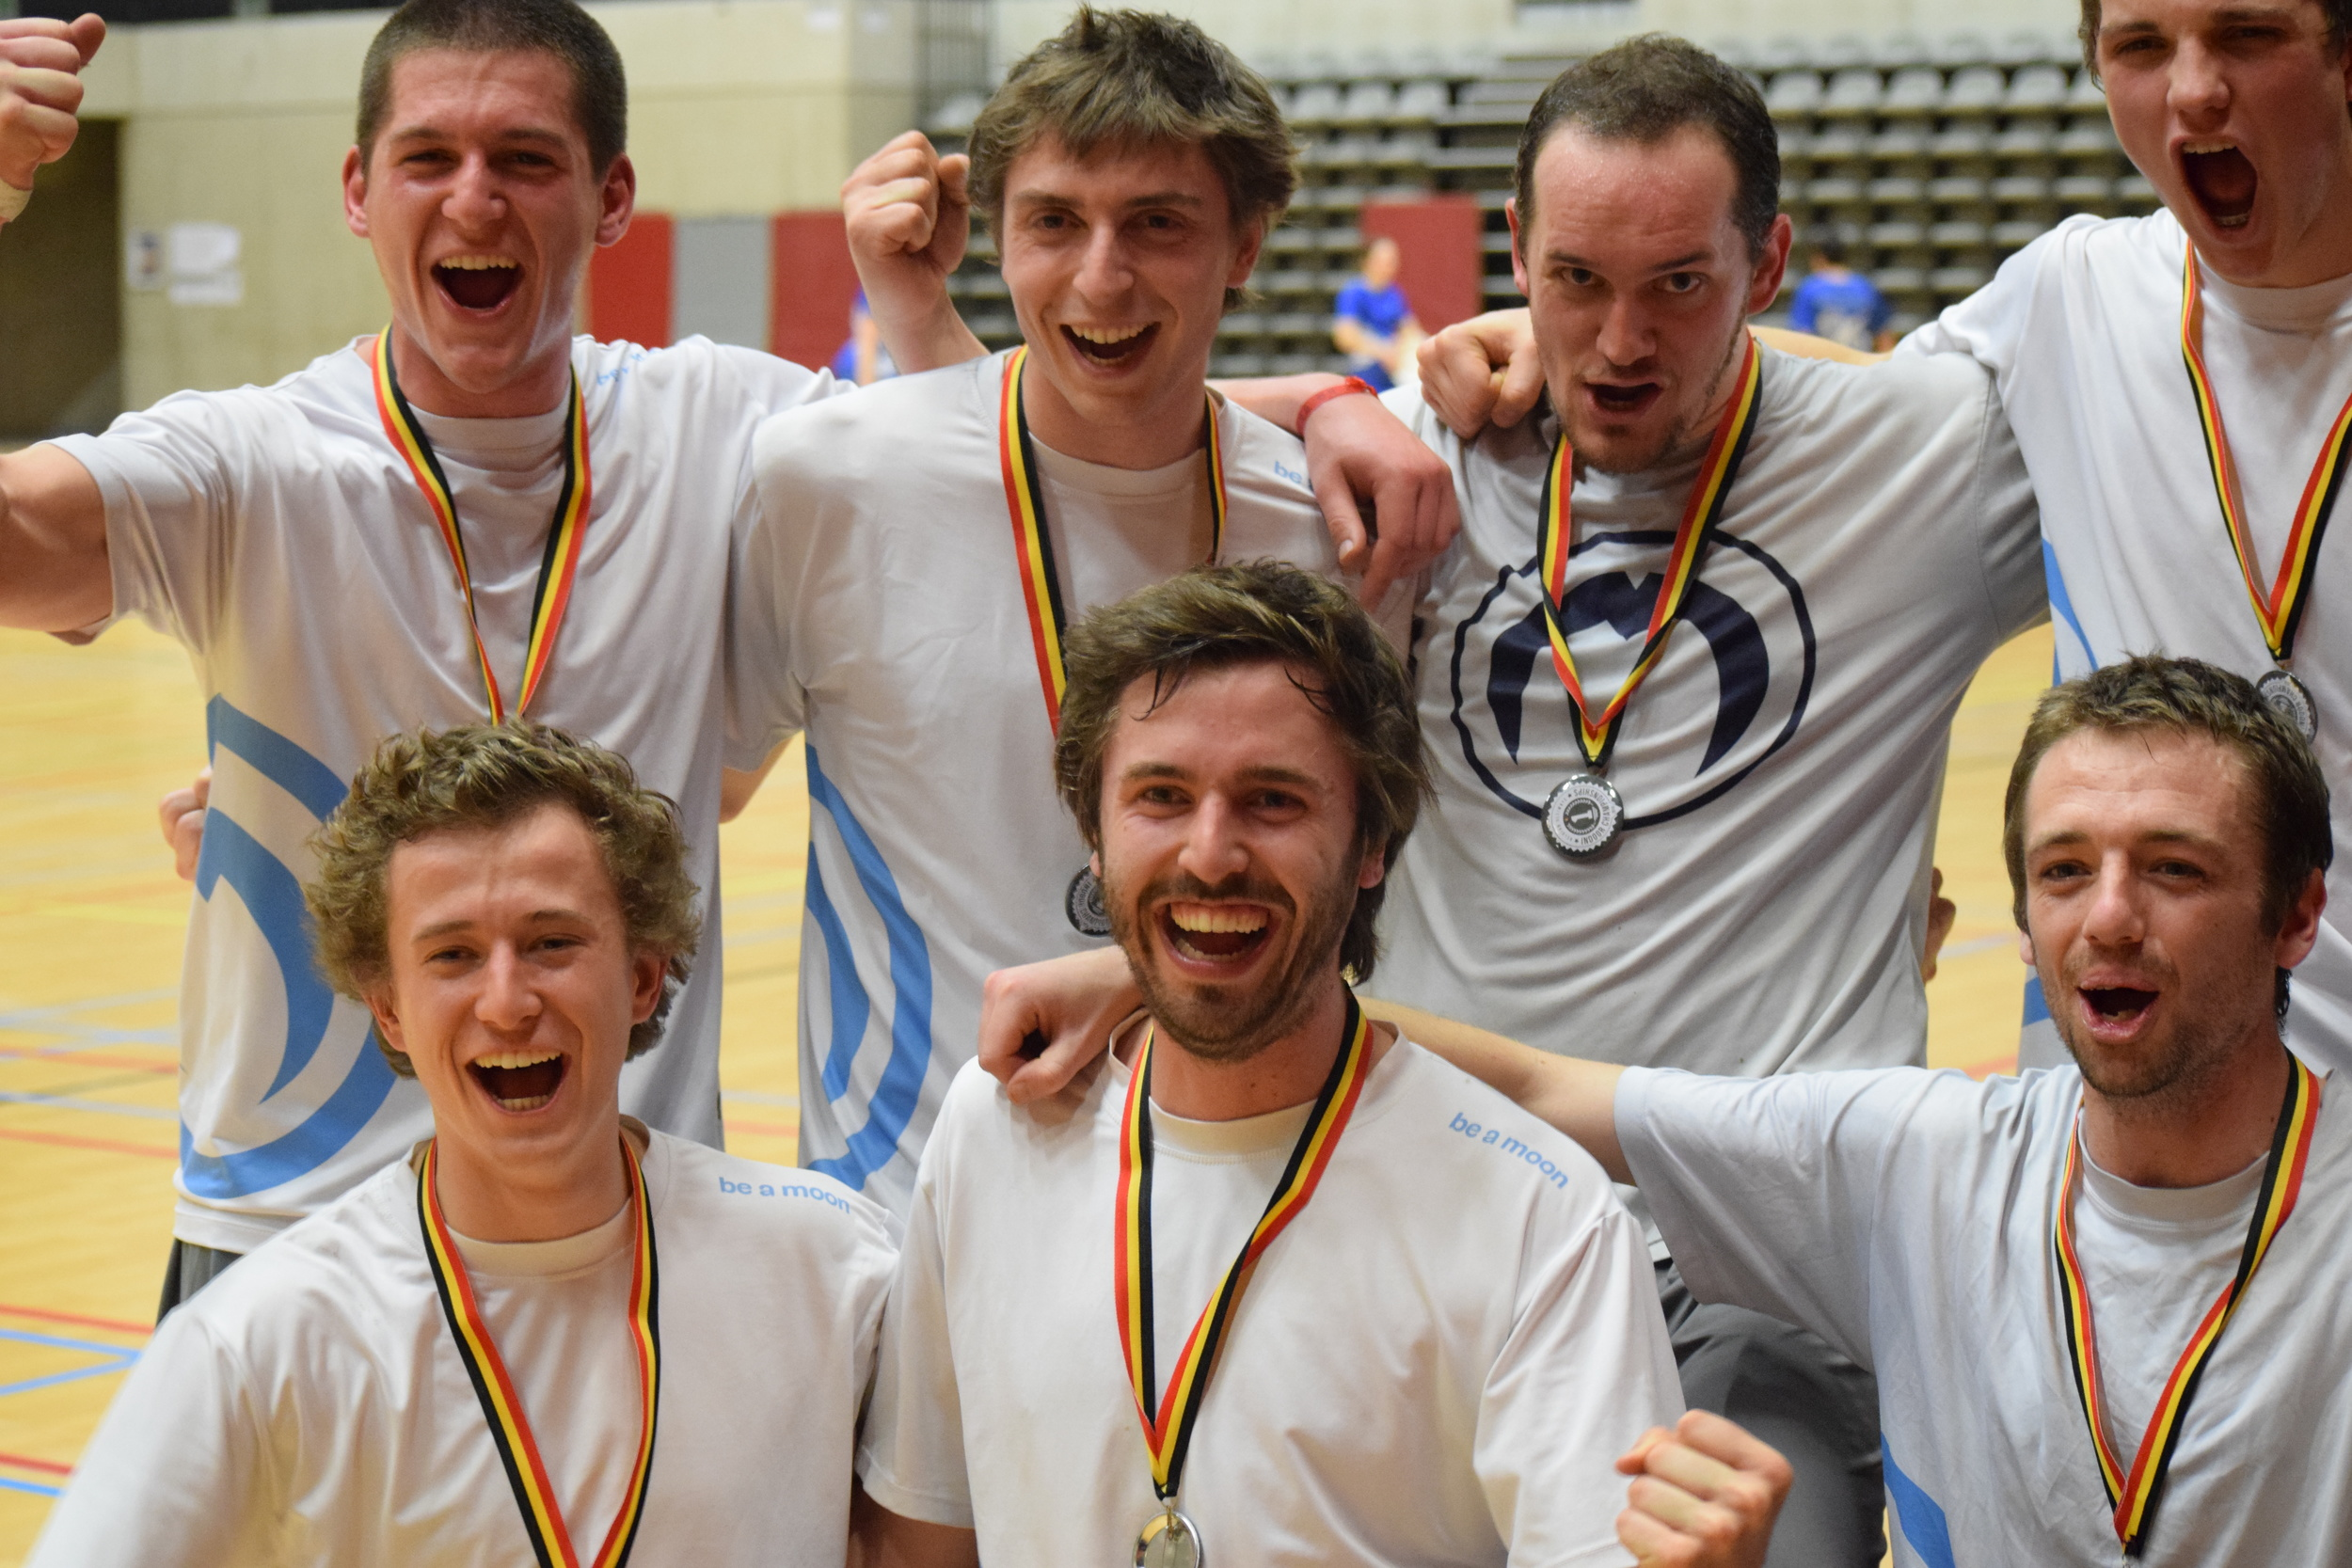 Mooncatchers 1 after their victory of BUIC 2016